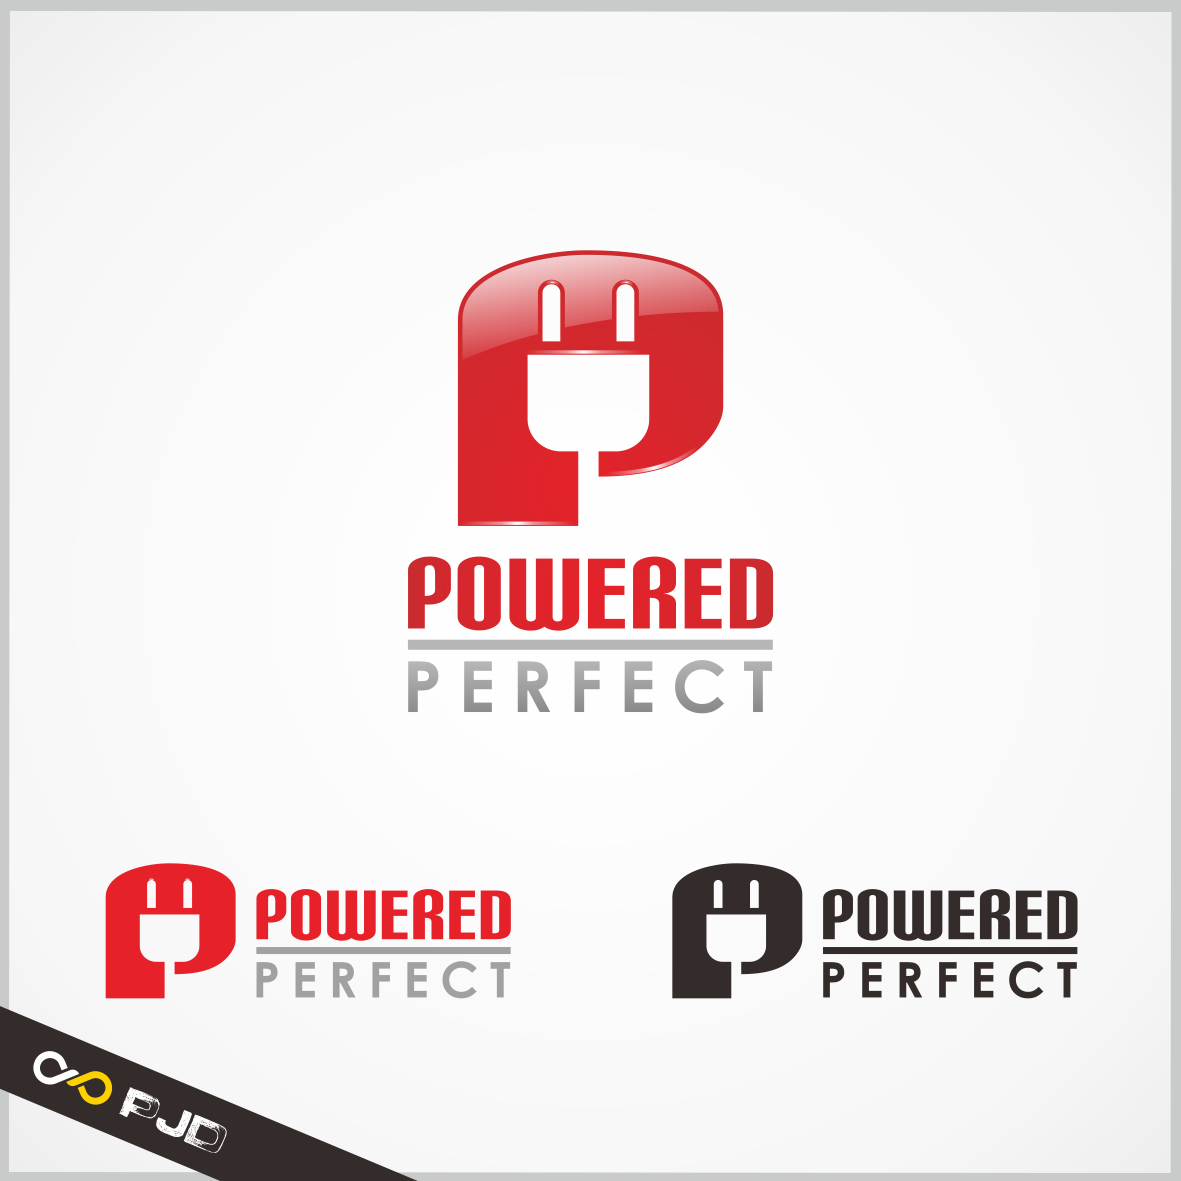 Logo Design by PJD - Entry No. 78 in the Logo Design Contest Captivating Logo Design for Powered Perfect.